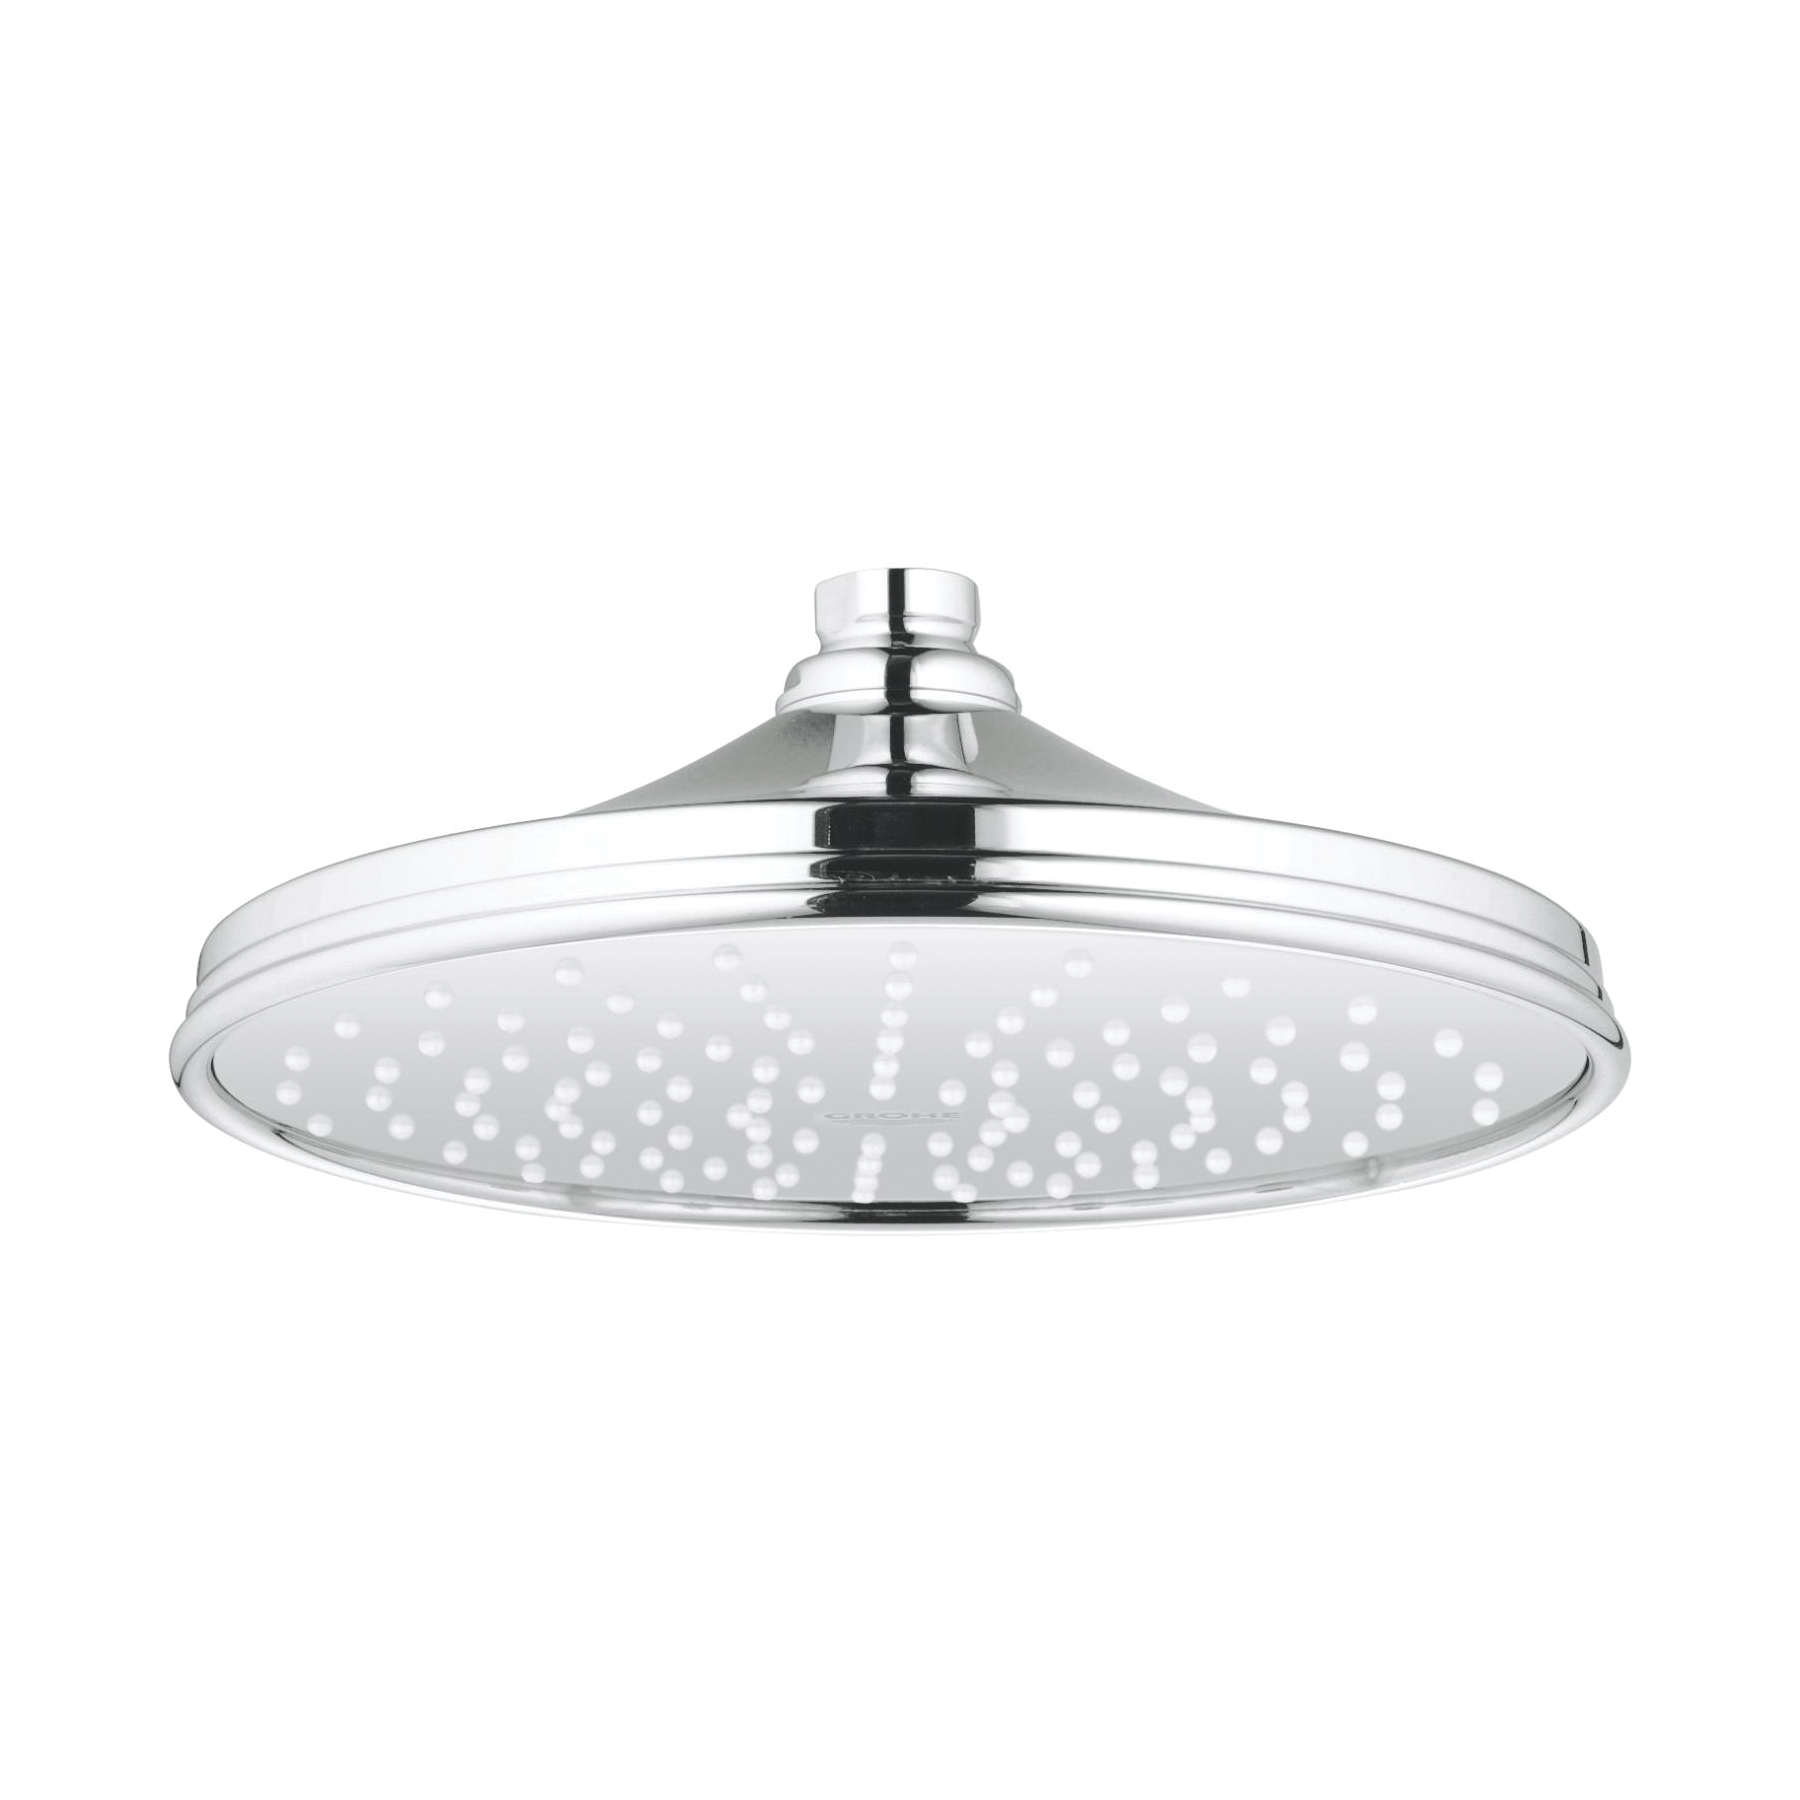 GROHE 27823000 Rainshower® Rustic 210 Shower Head, 2 gpm, 1 Spray, 8-1/4 in Head, Import